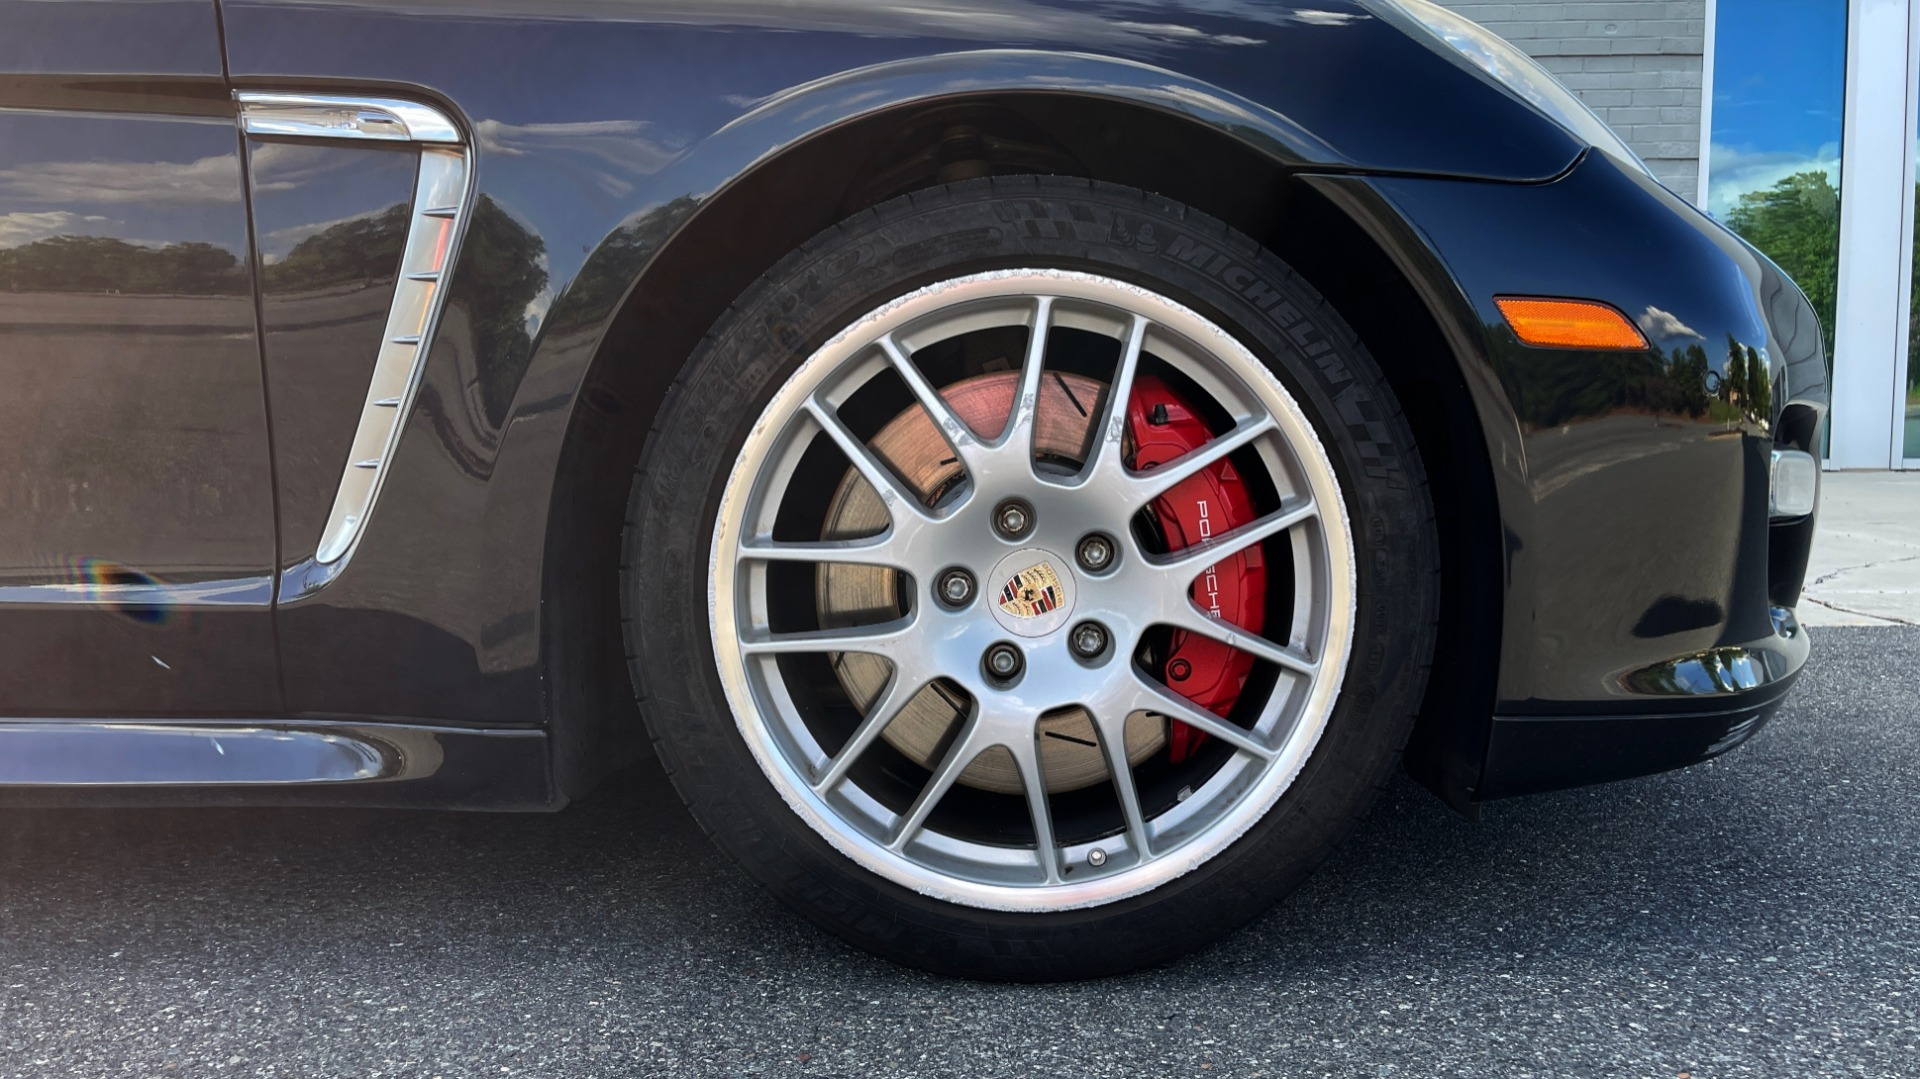 Used 2010 Porsche PANAMERA 4DR HB TURBO / SPORT CHRONO / BURMESTER / AUTO CLIMATE CONTROL for sale $40,995 at Formula Imports in Charlotte NC 28227 65